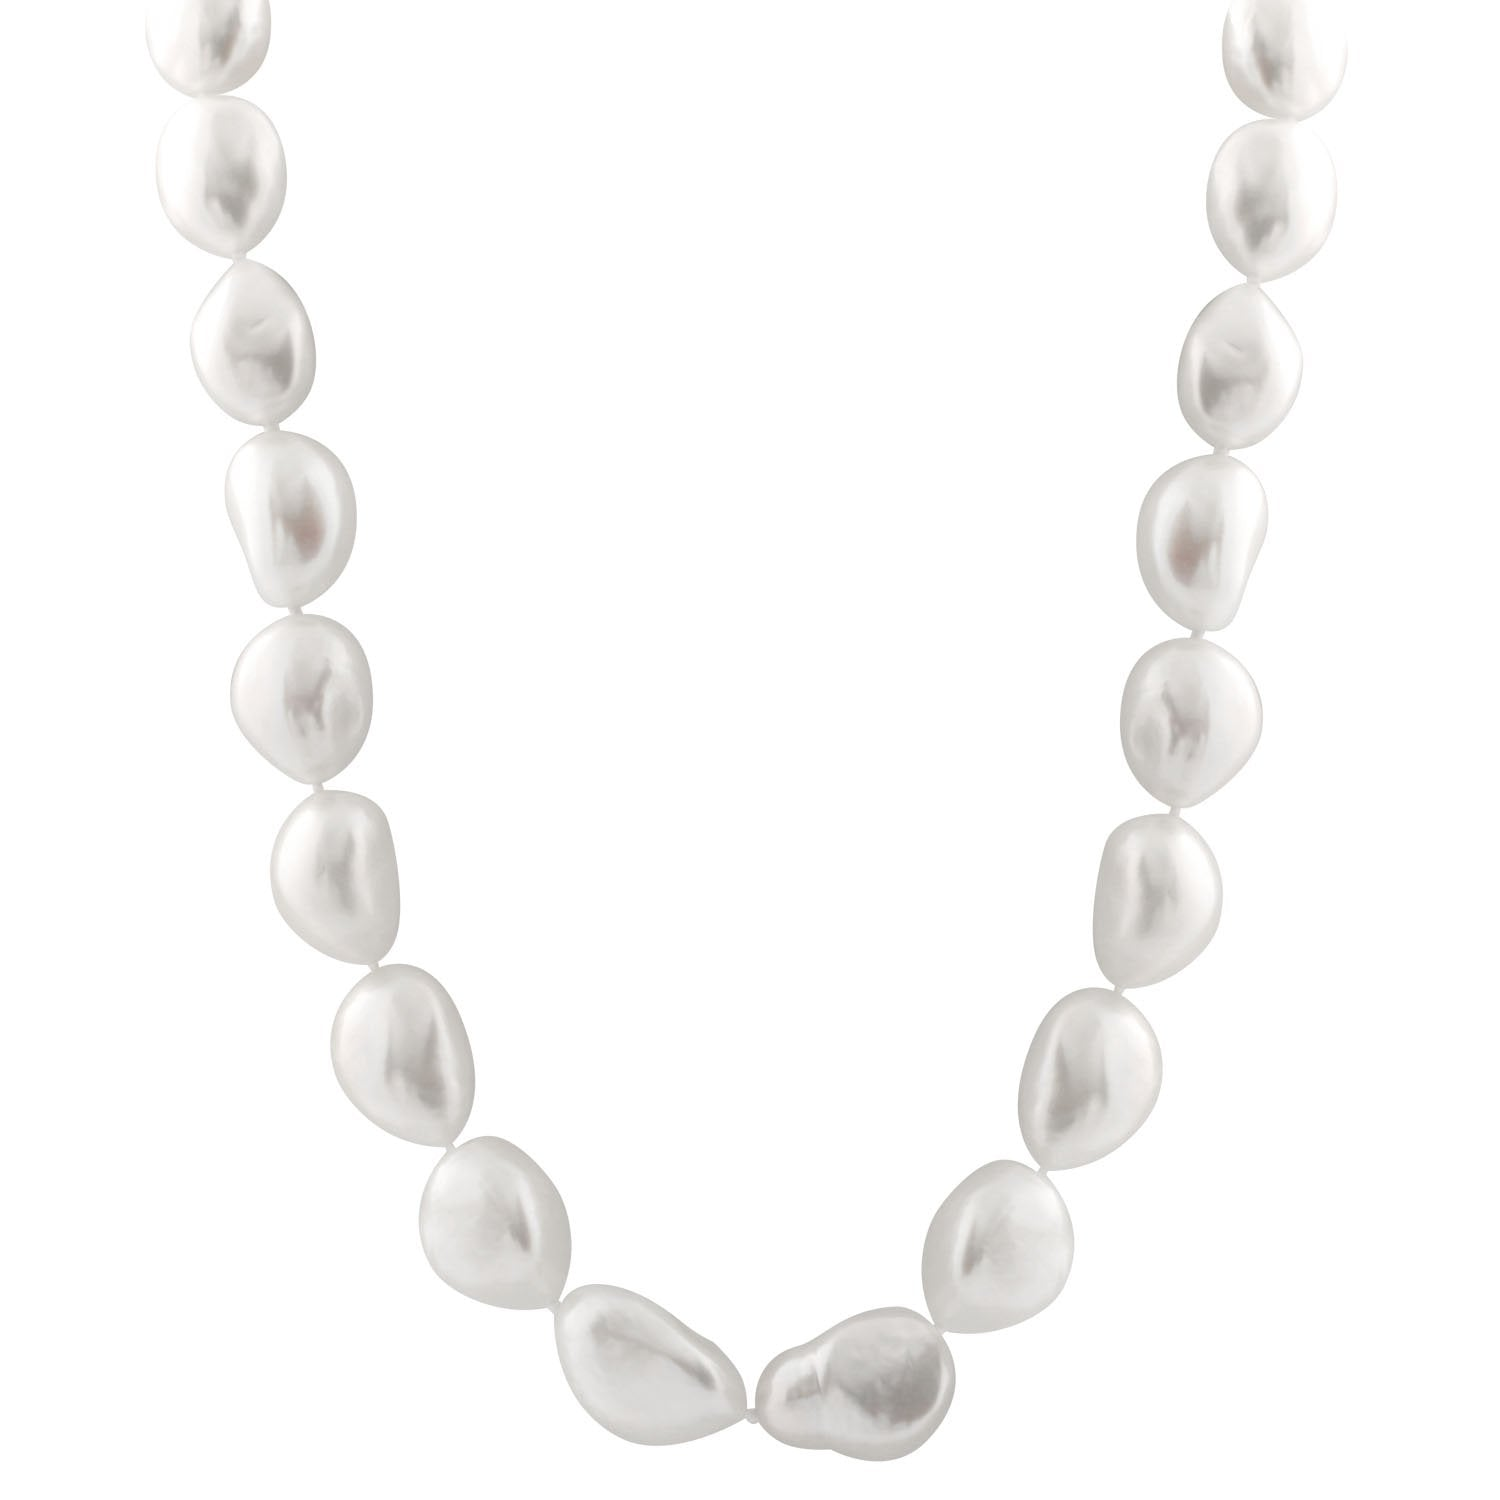 Magnificent Baroque White Freshwater Pearl Necklace